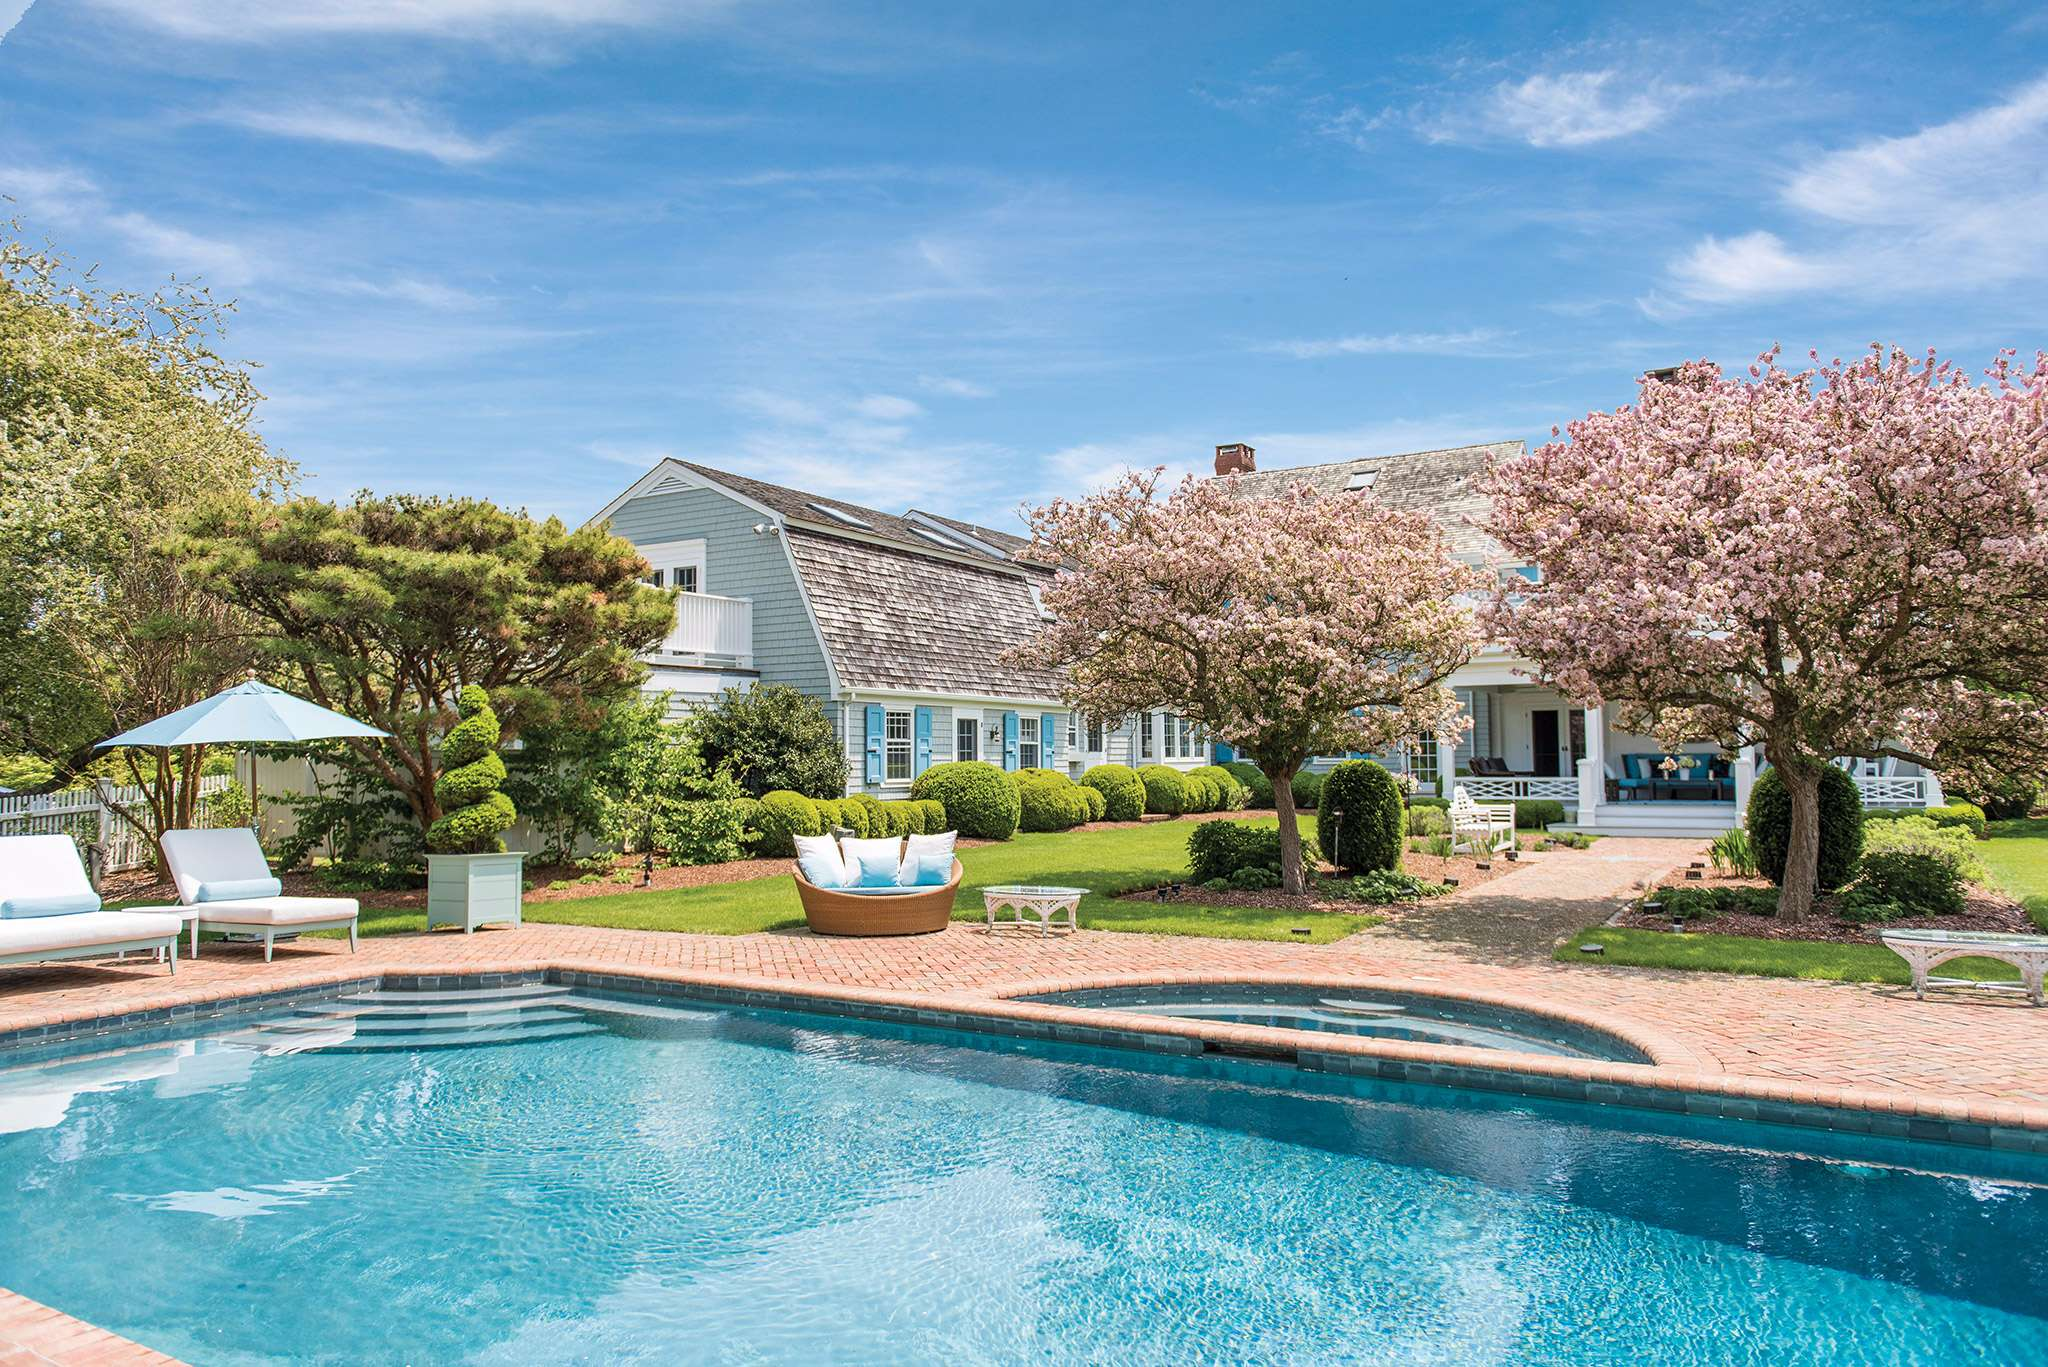 Single Family Home for Sale at Middle Lane, East Hampton Village 89 Middle Lane, East Hampton, New York